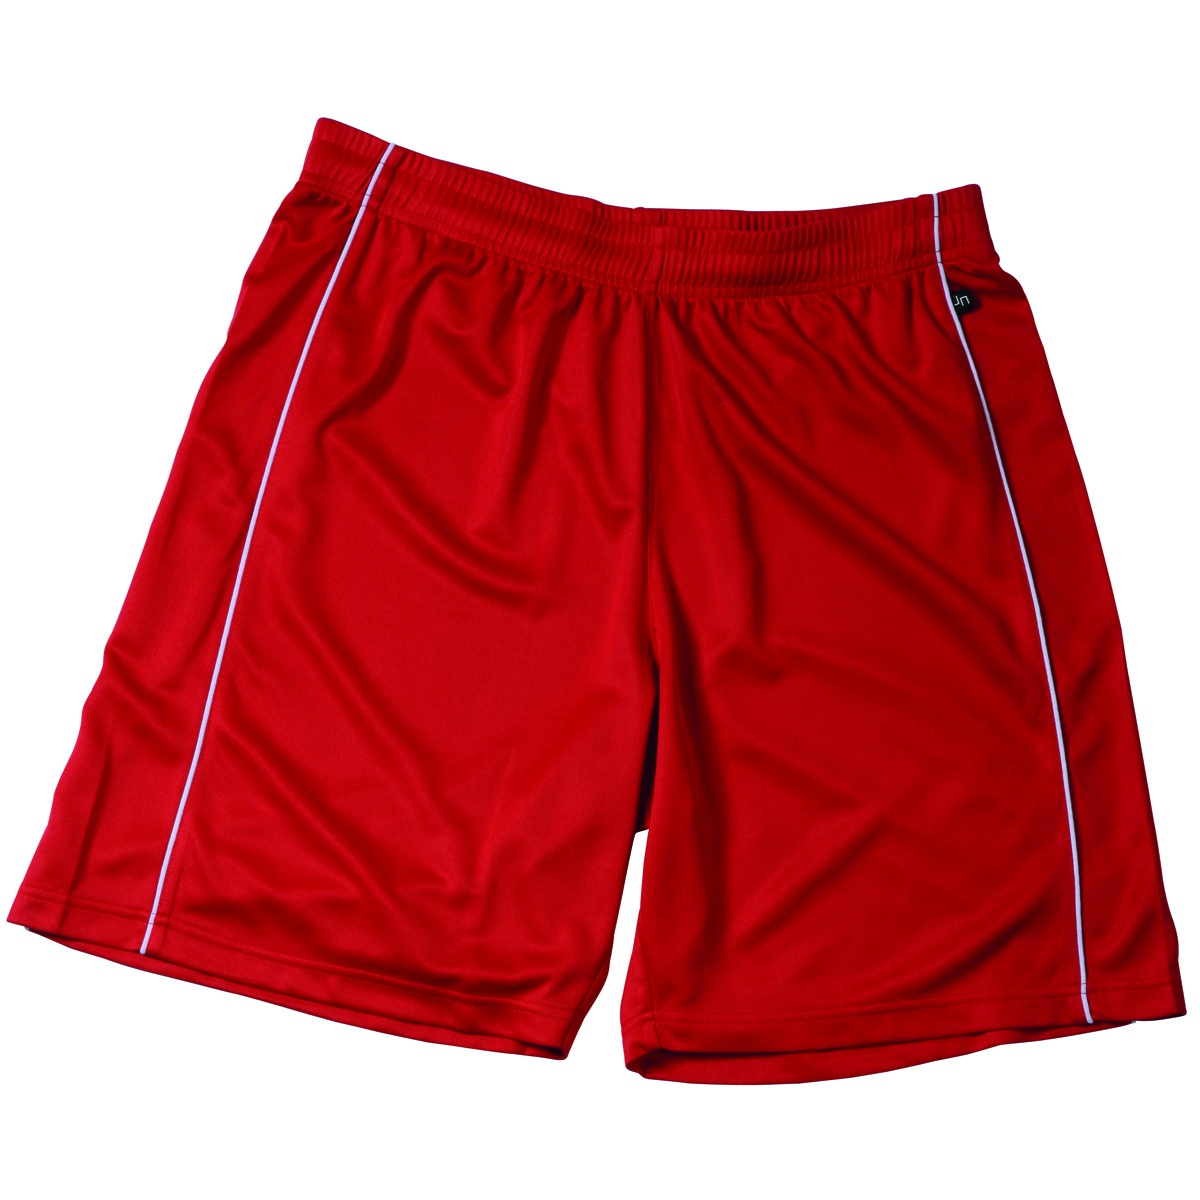 Short football entraînement - ENFANT - JN387K - rouge